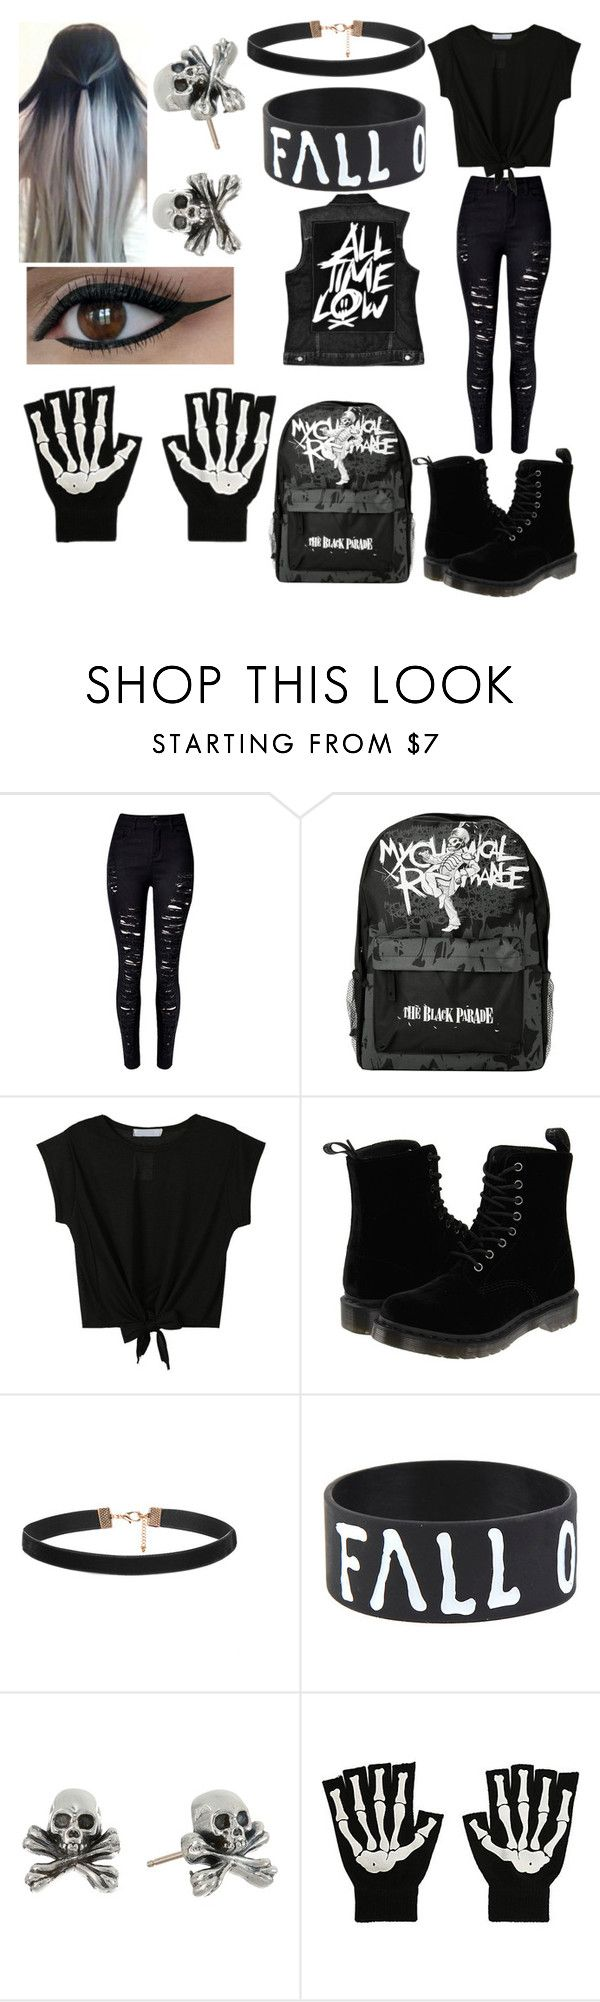 """""""My Sister's Outfit #1"""" by bts-got7-block-b ❤ liked on Polyvore featuring Dr. Martens, King Baby Studio, women's clothing, women, female, woman, misses and juniors"""